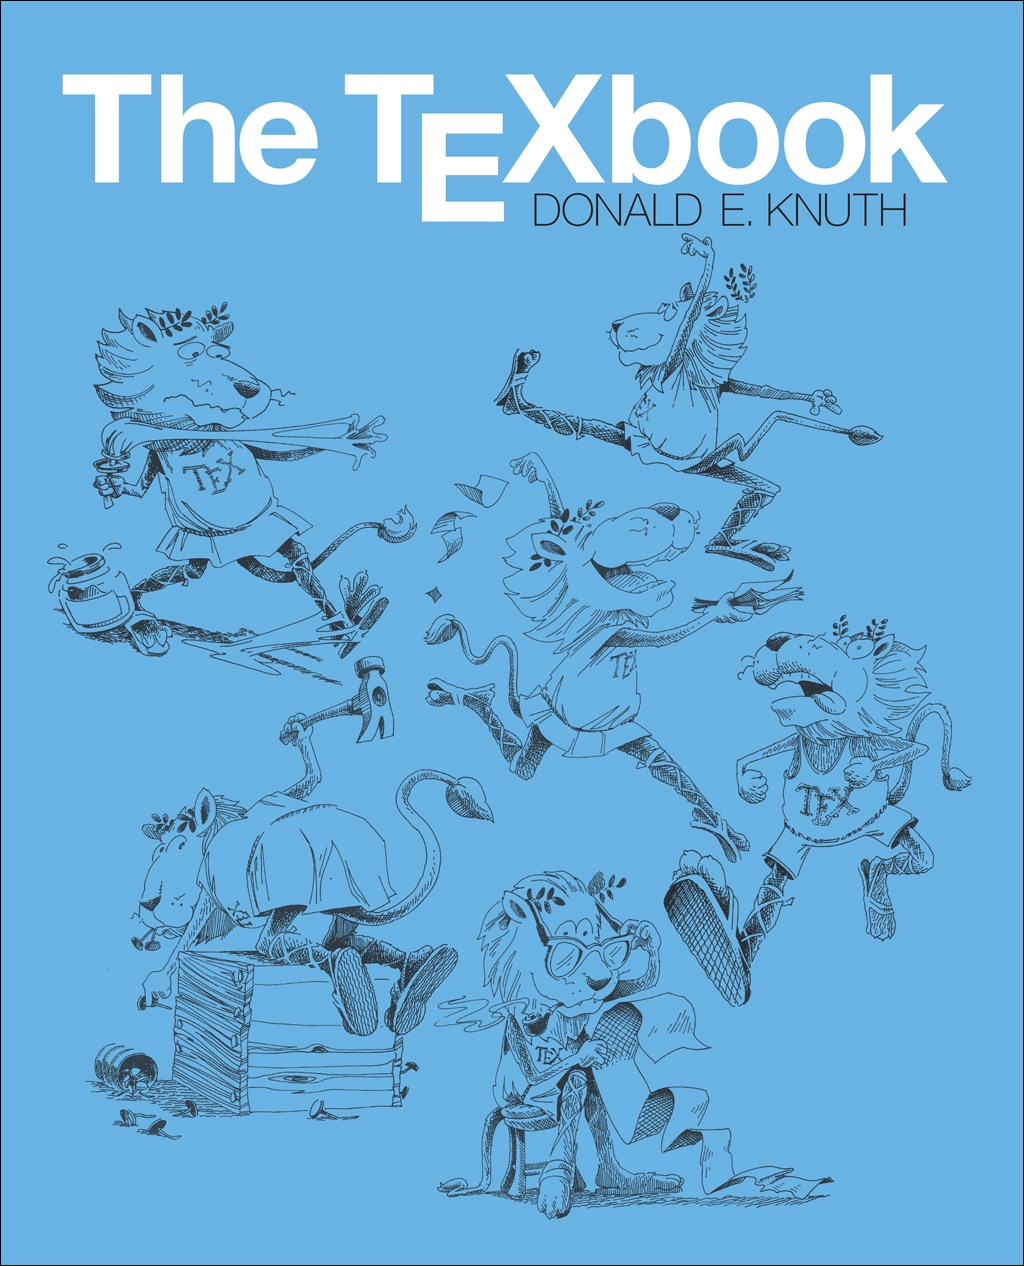 TeXbook, The